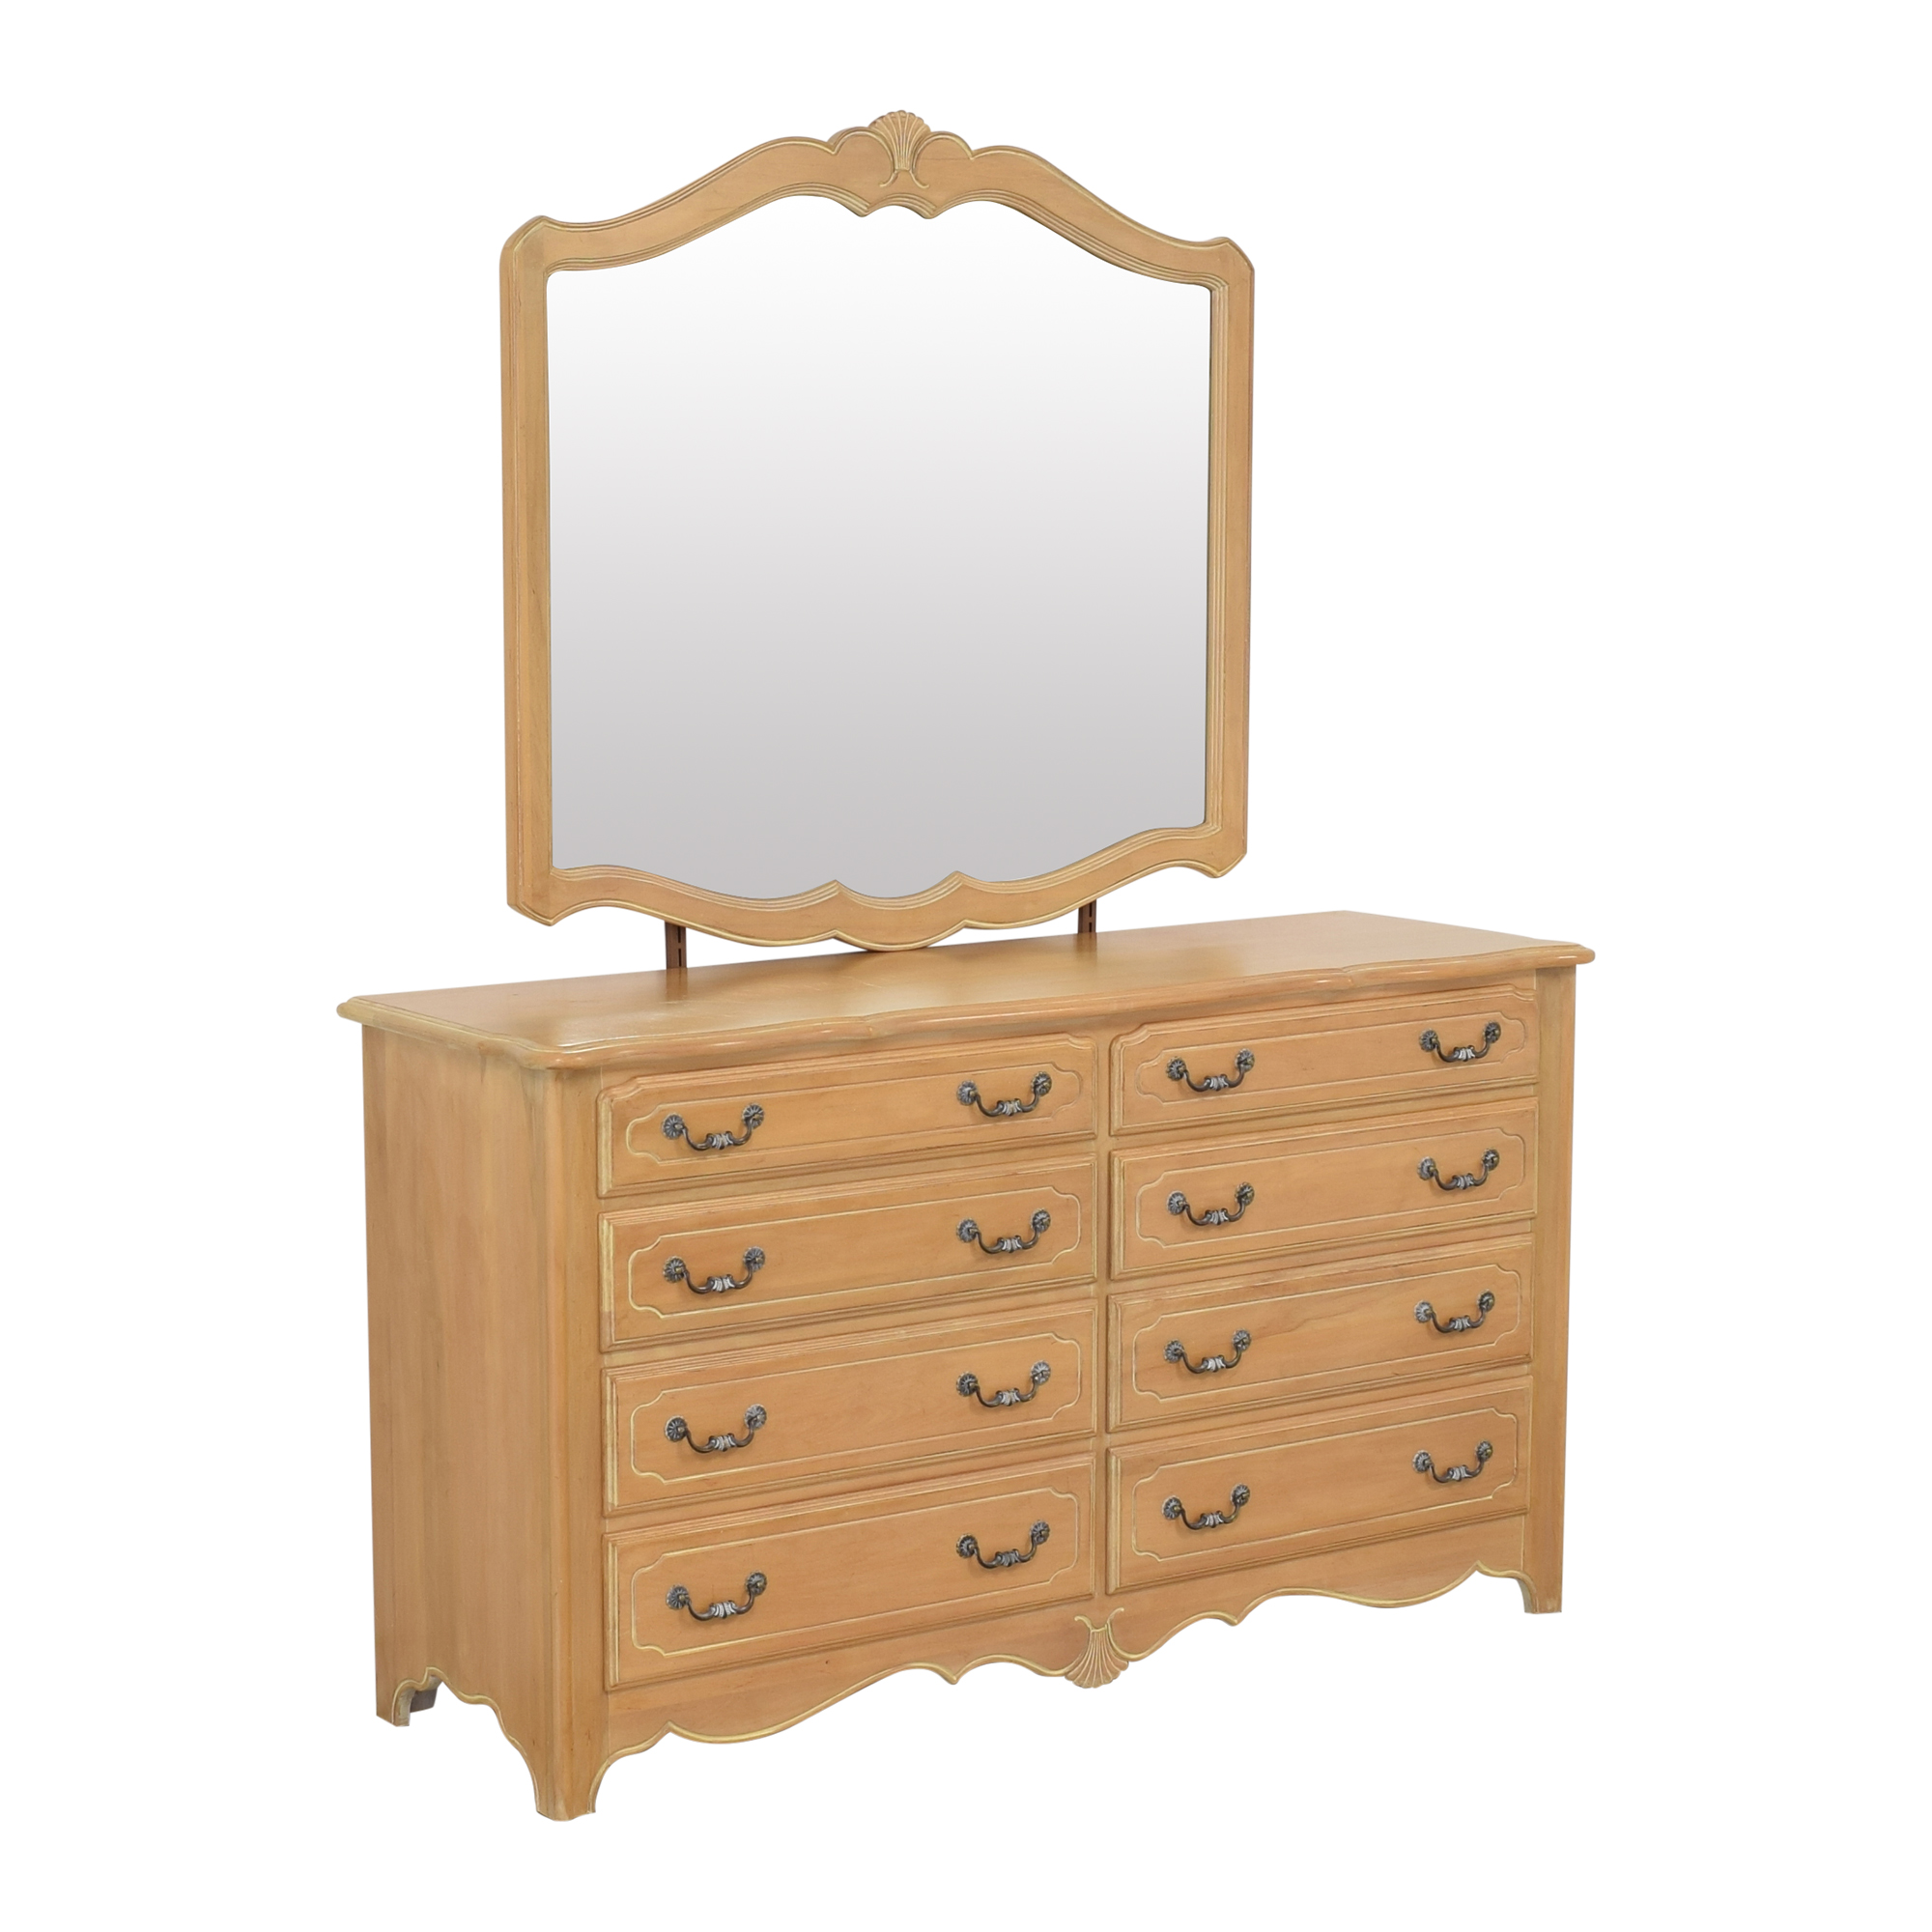 Ethan Allen Ethan Allen Country French Dresser with Mirror used